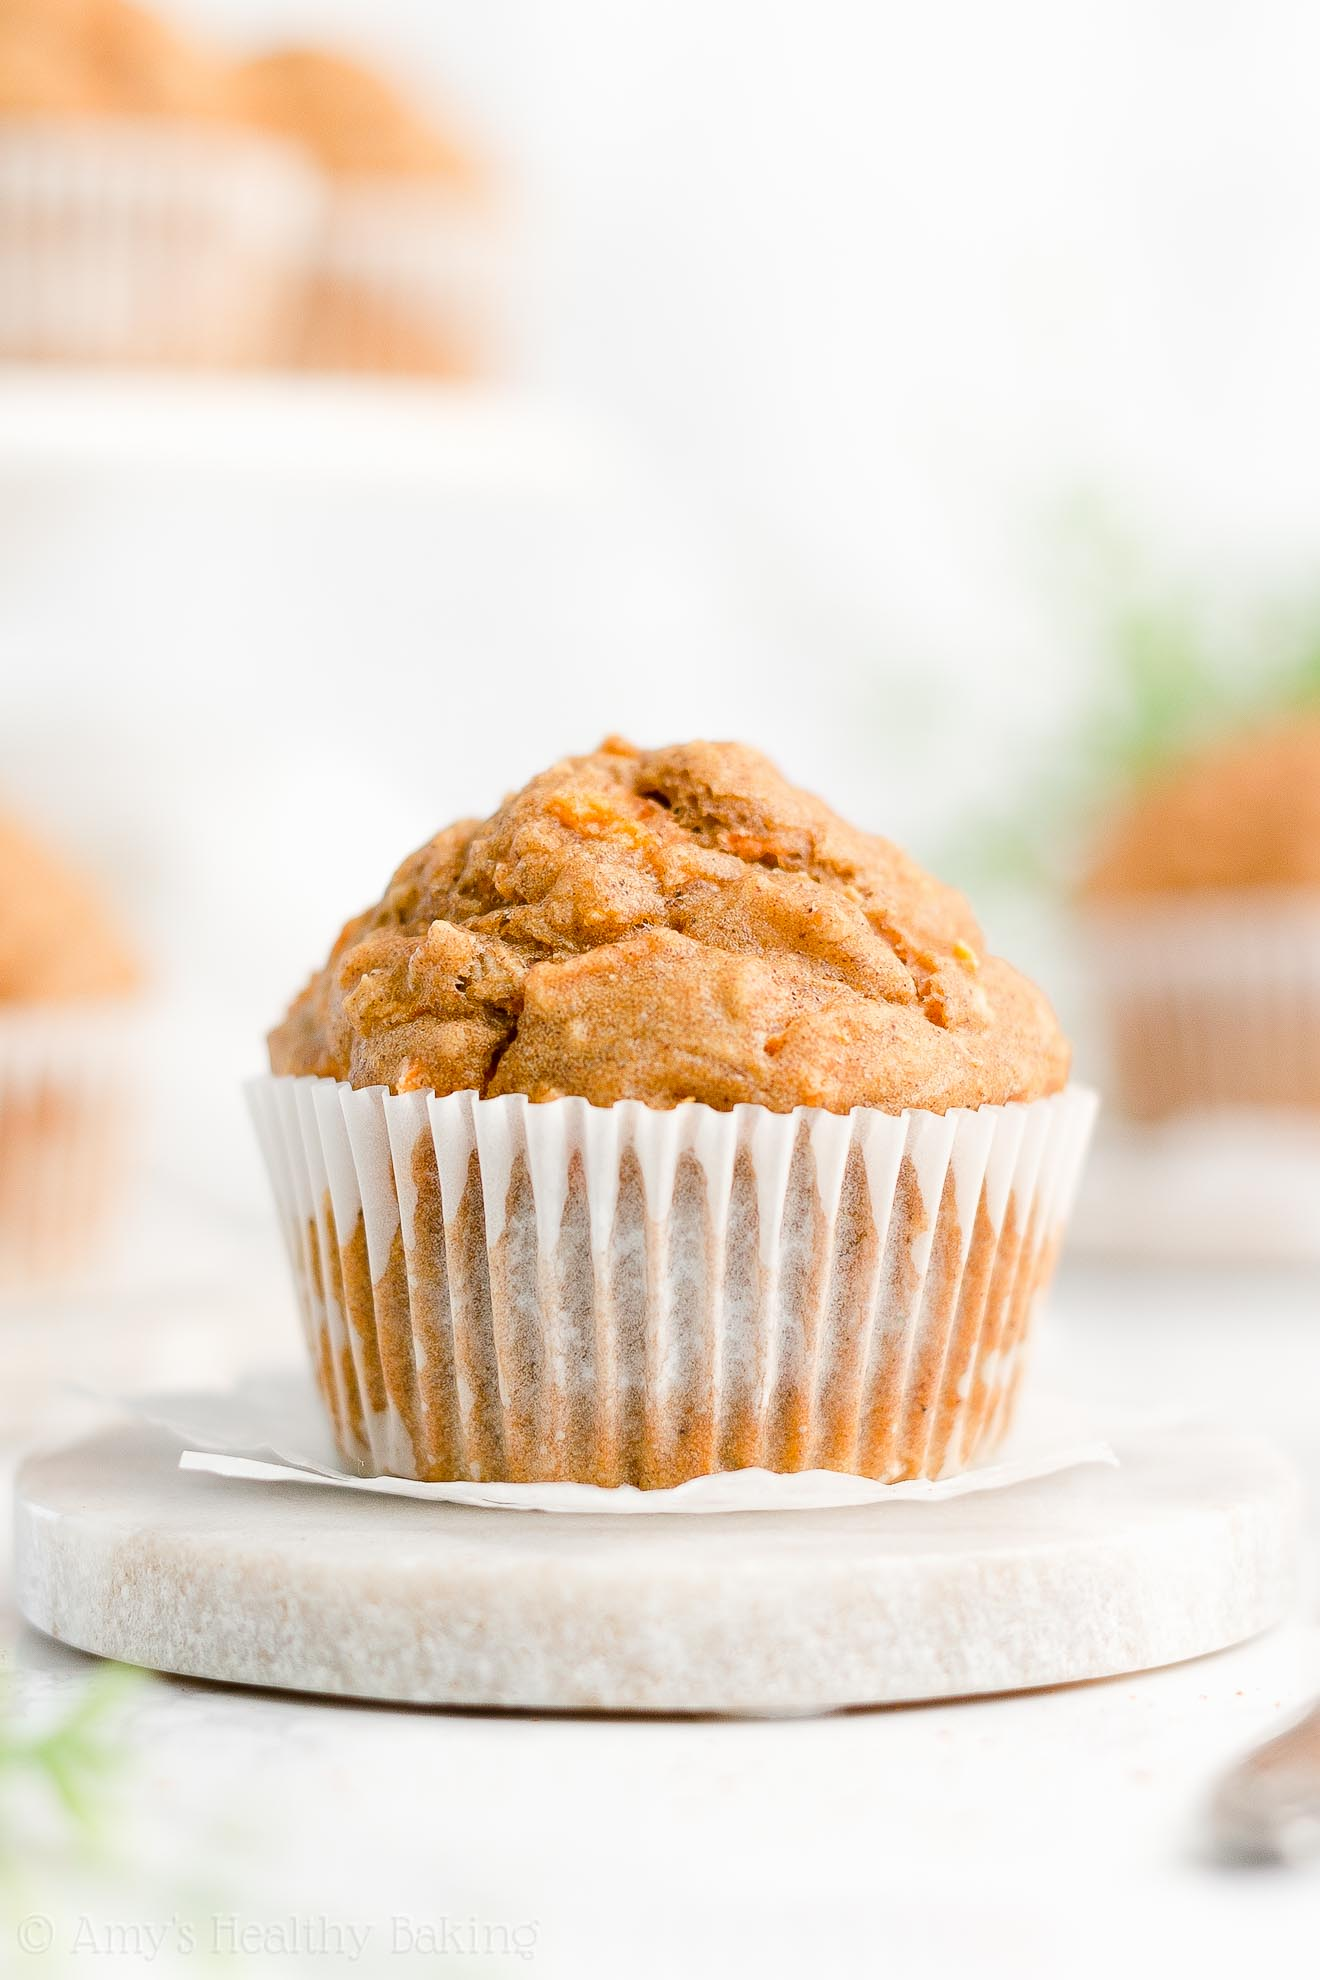 Best Easy Healthy Low Calorie Gluten Free Moist Carrot Cake Oatmeal Muffins